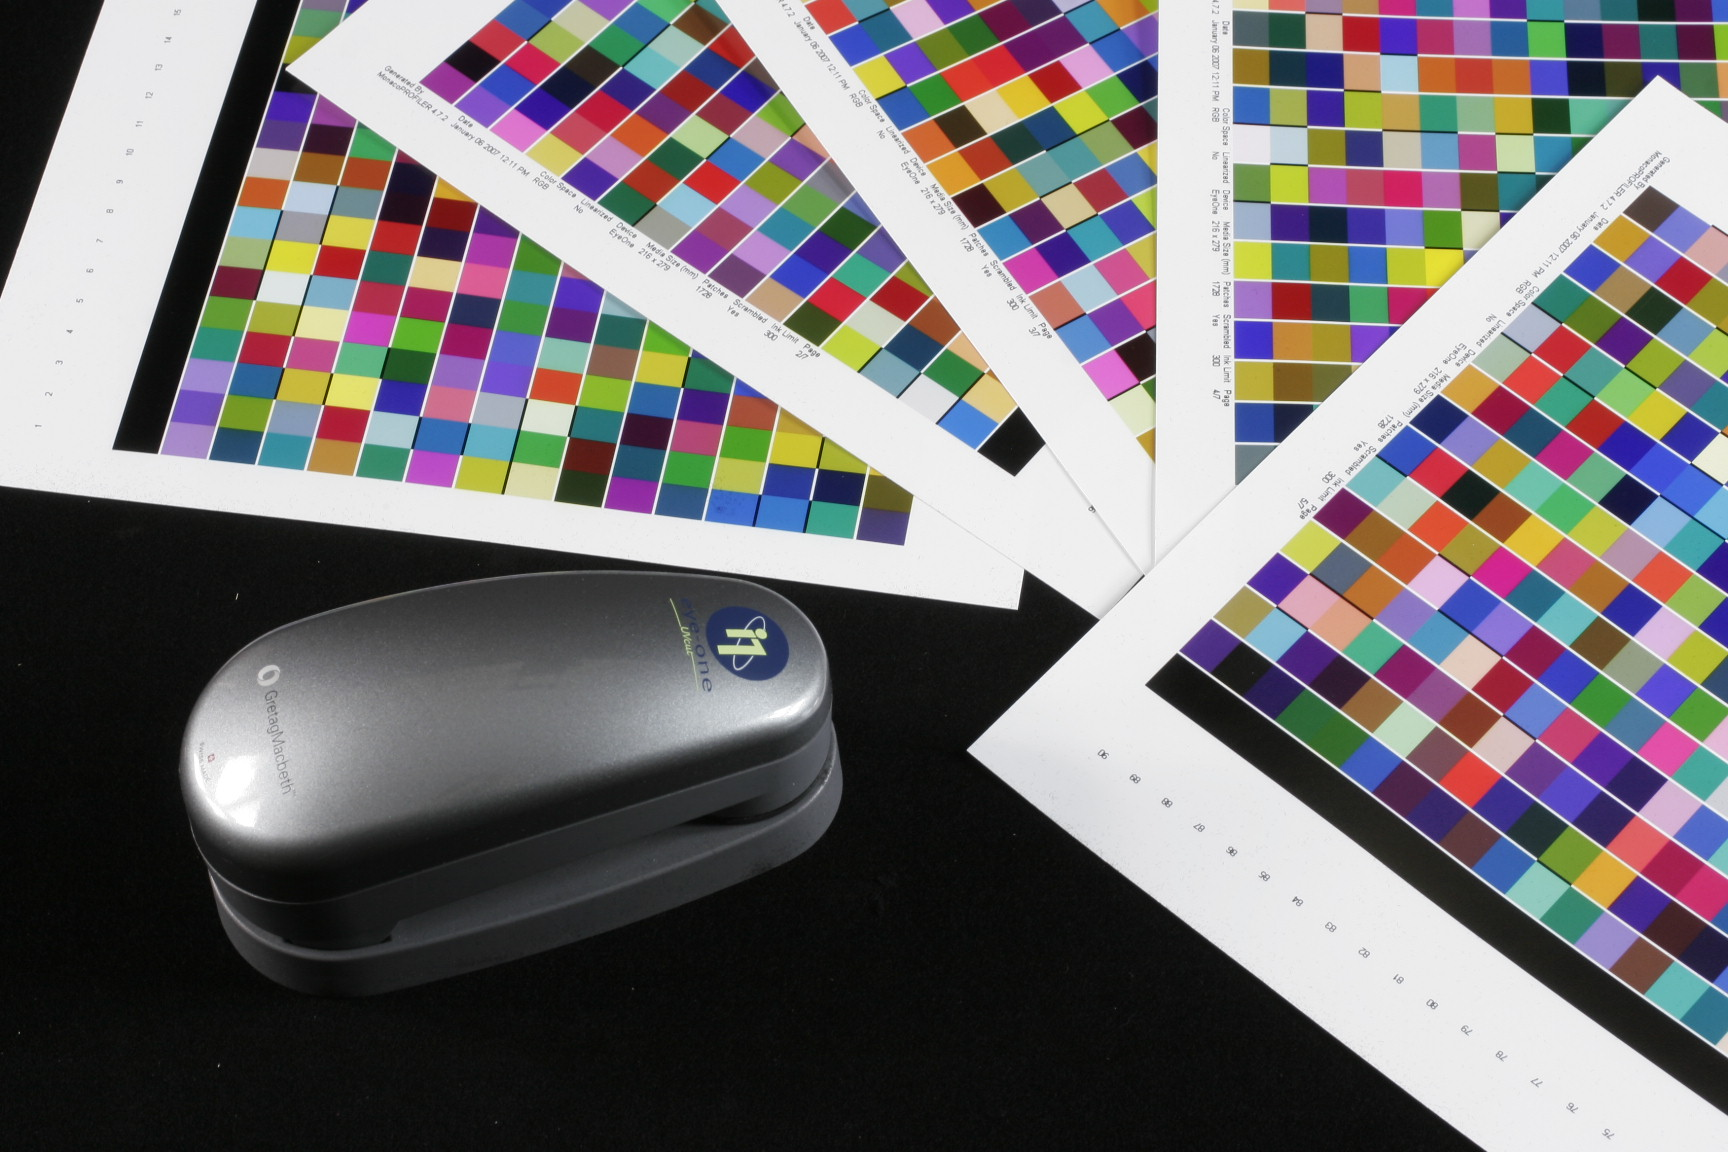 spectrophotometer, color swatches